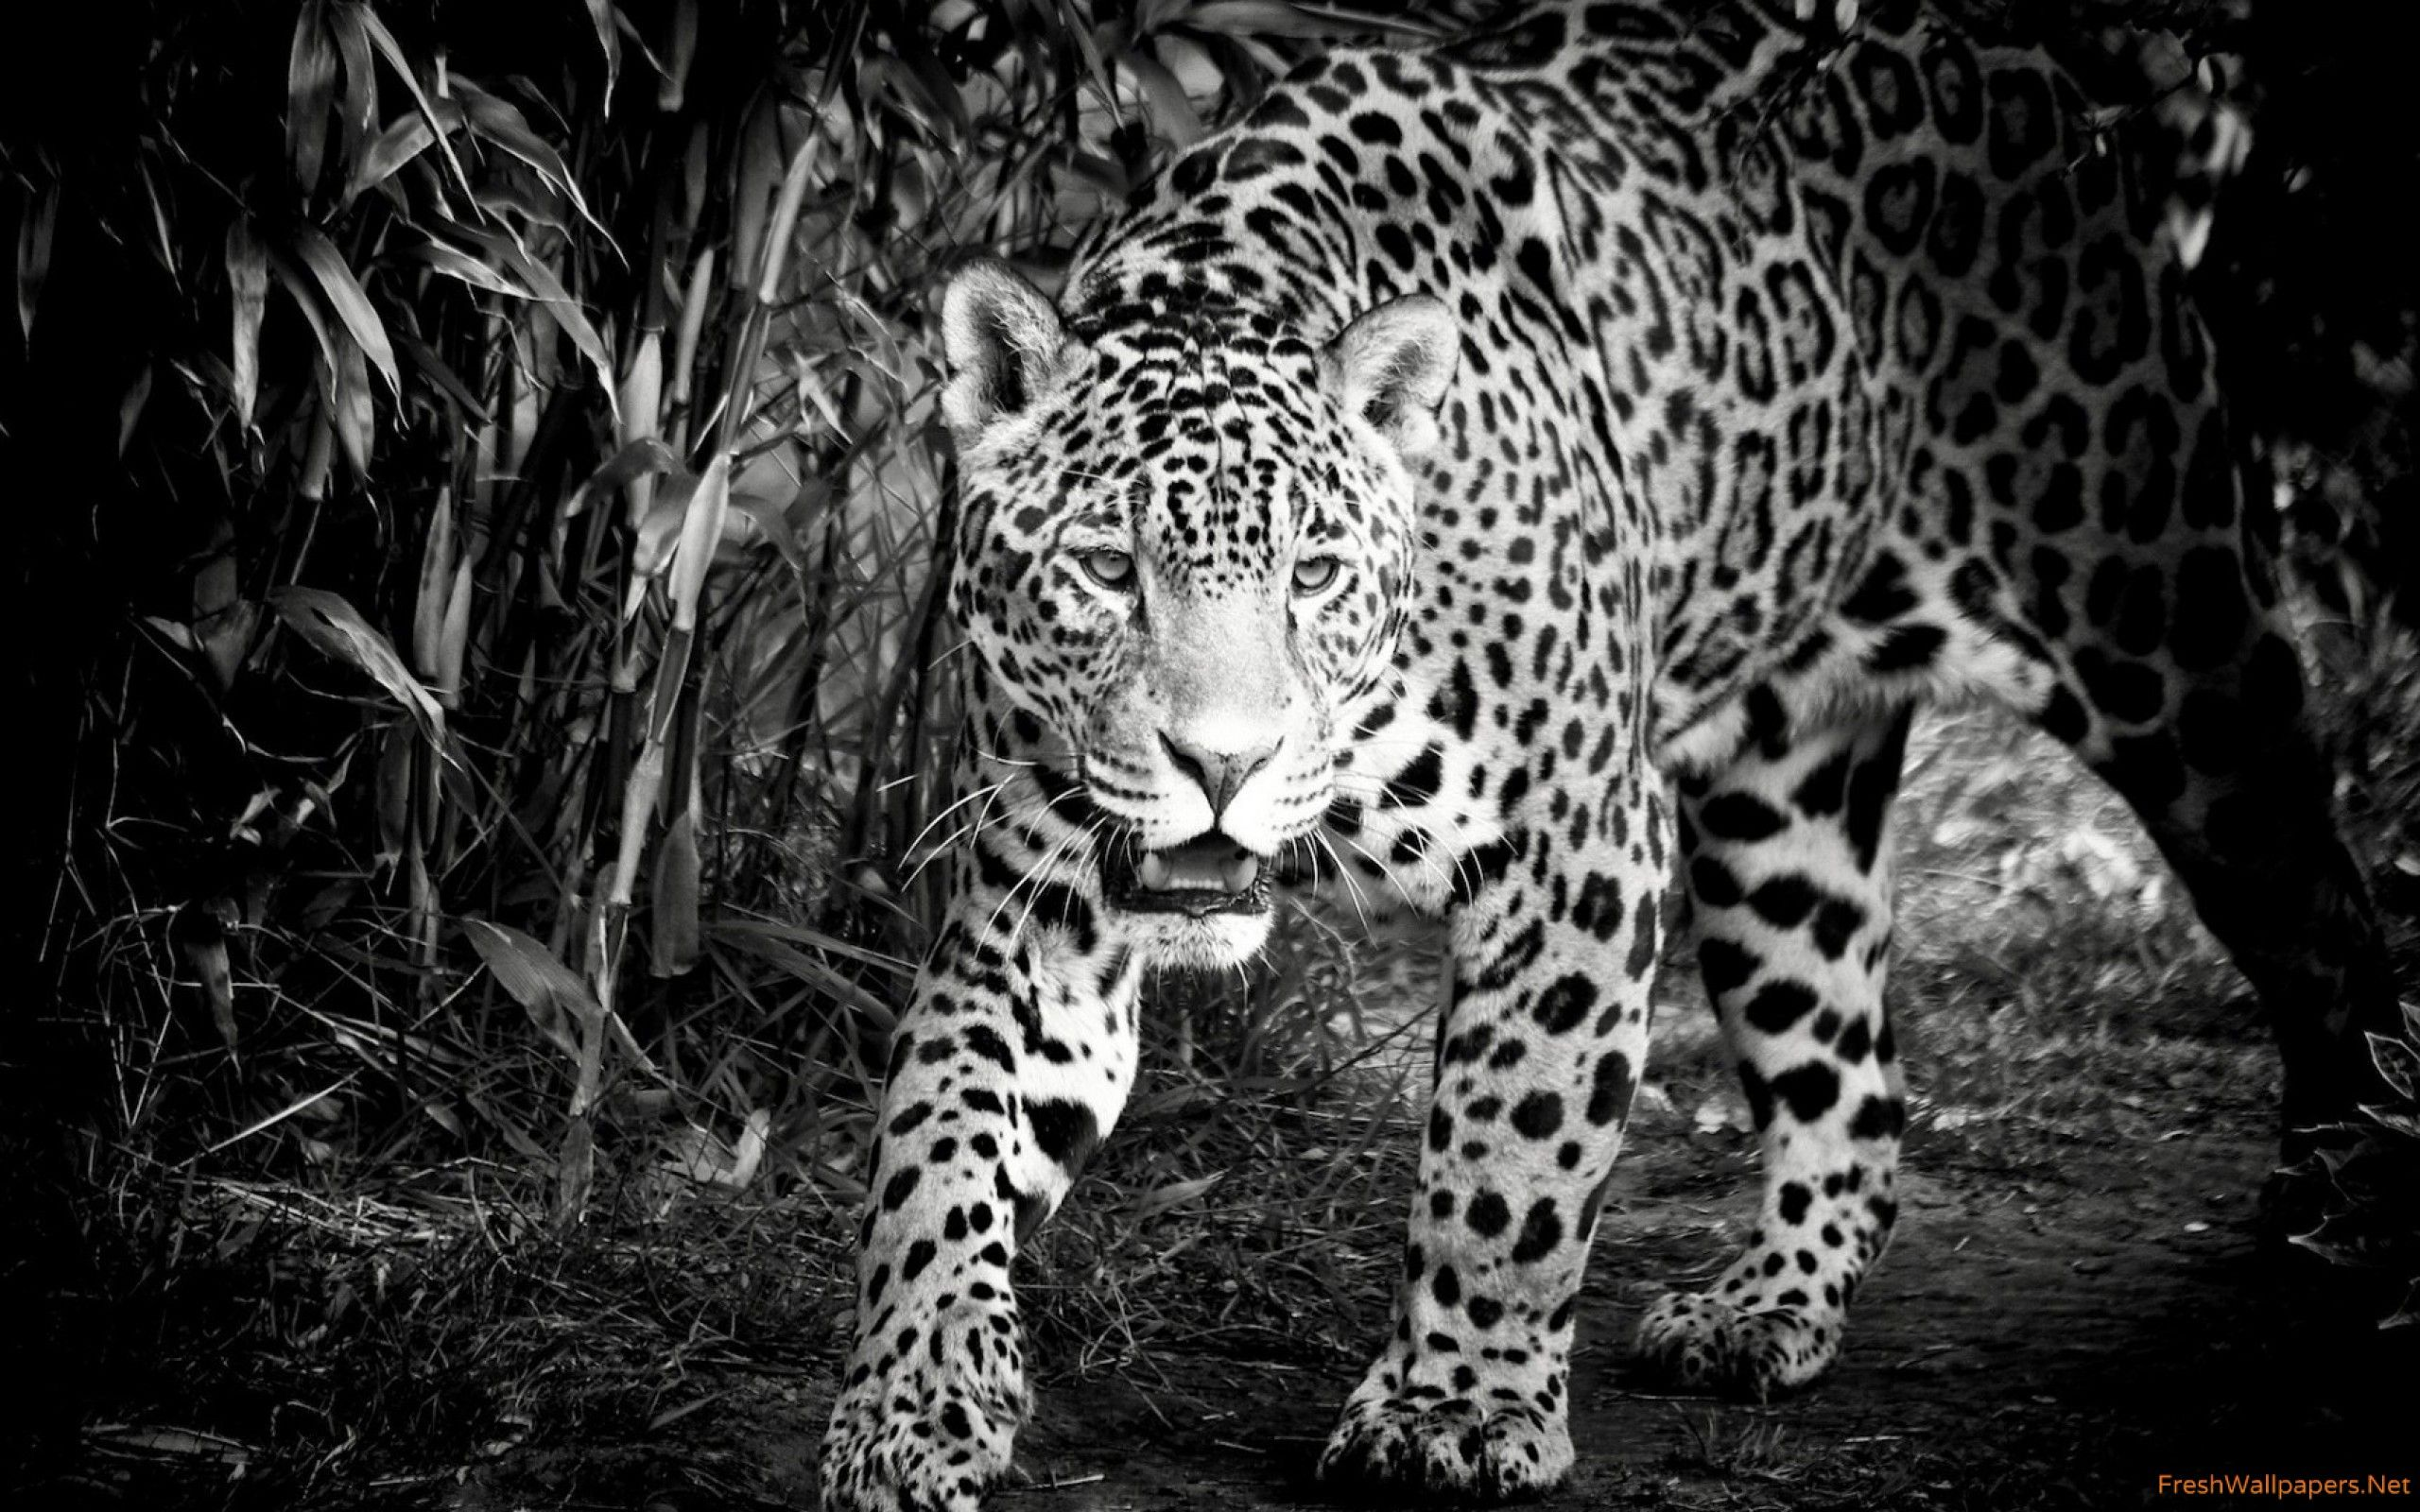 2560x1600 Black and White Jaguar wallpapers | Freshwallpapers